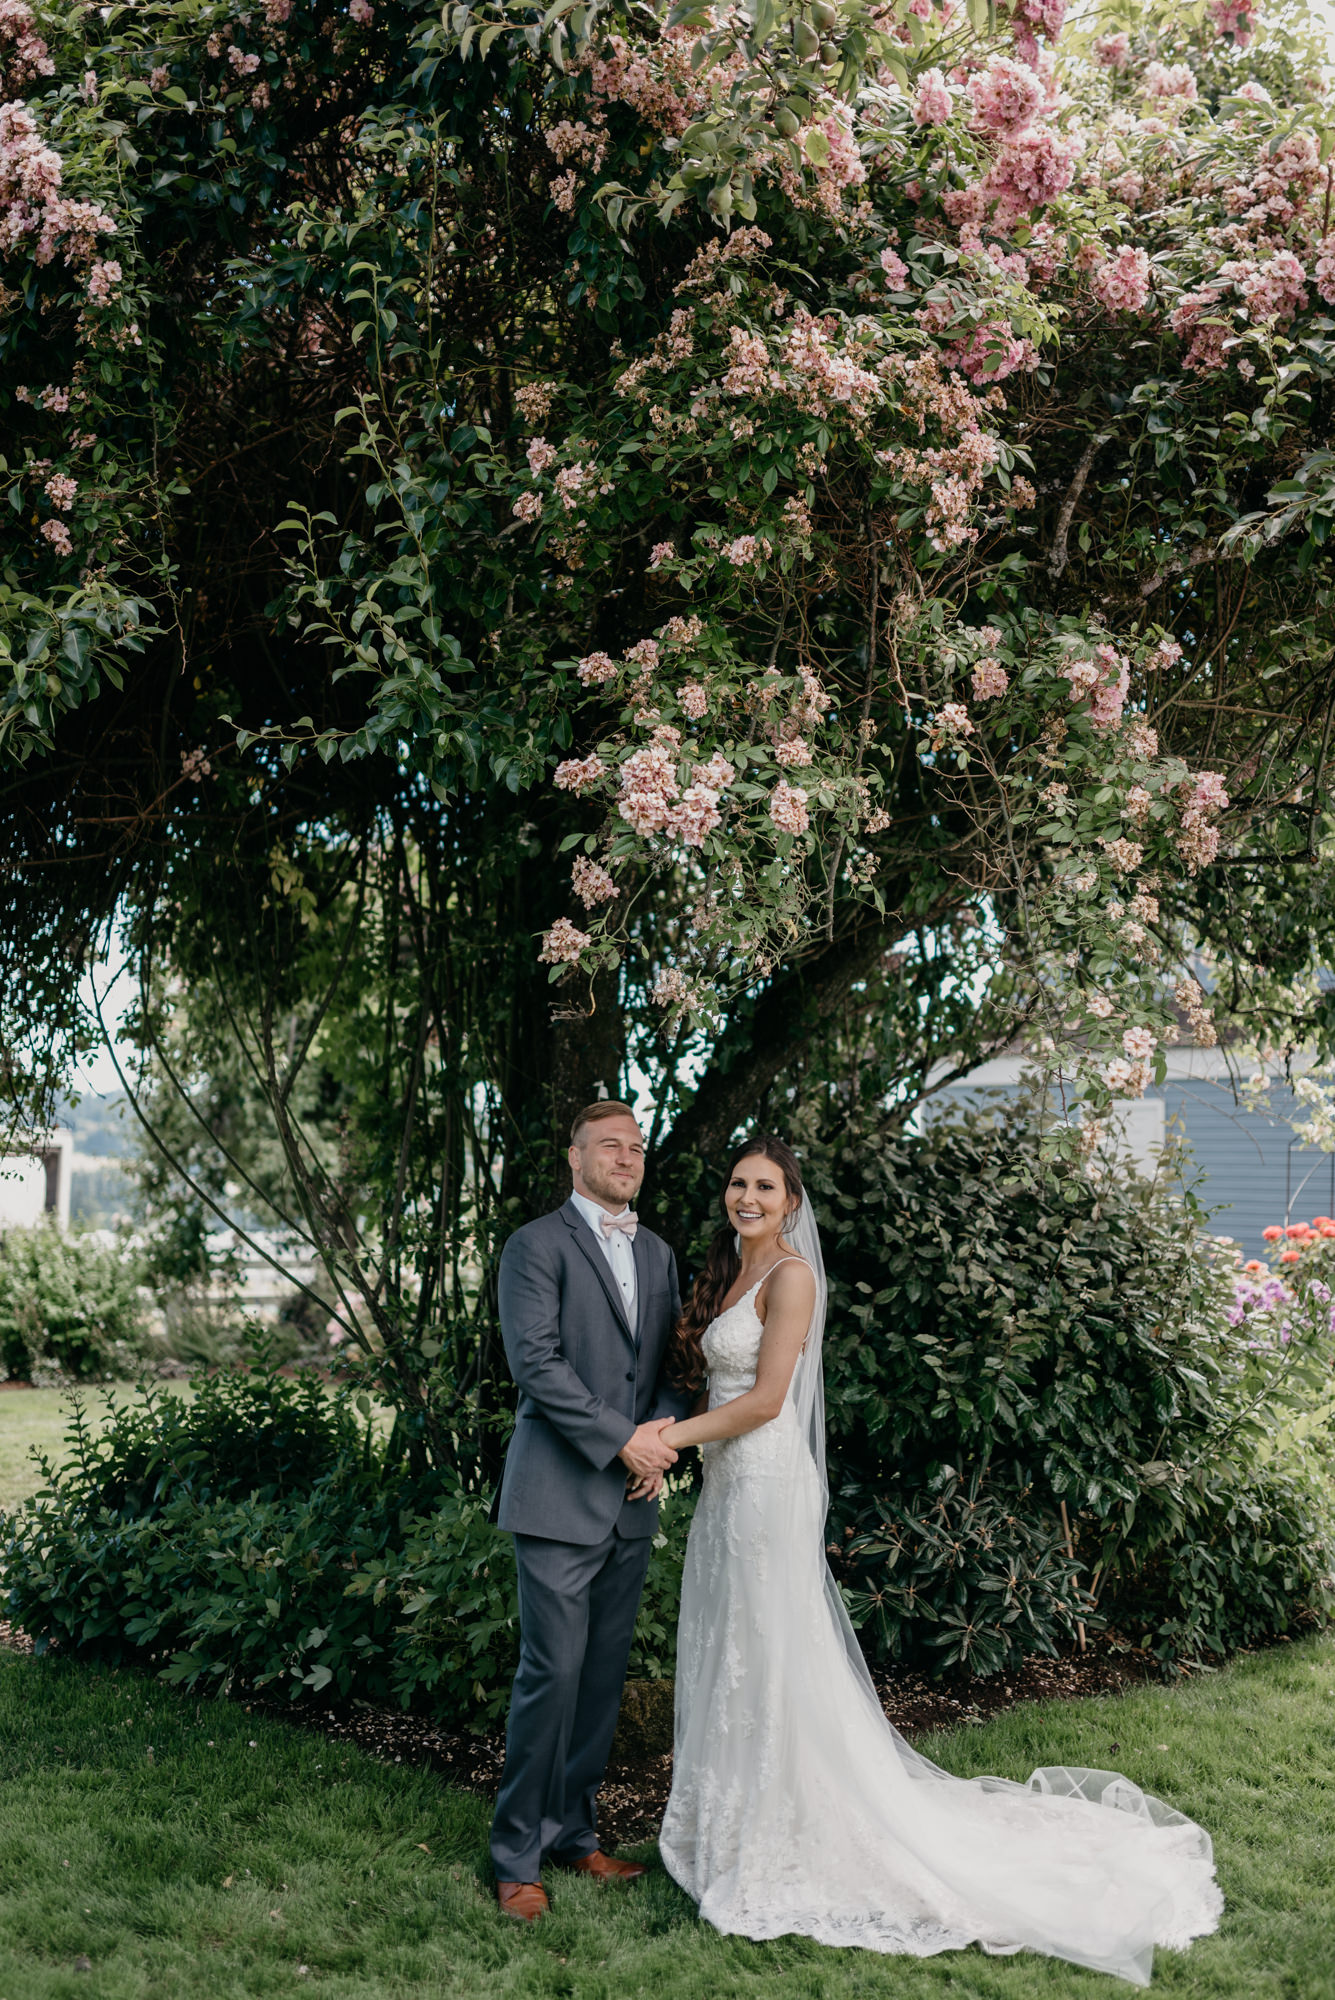 73-lake-oswego-wedding-portland-couple-rose-tree.jpg